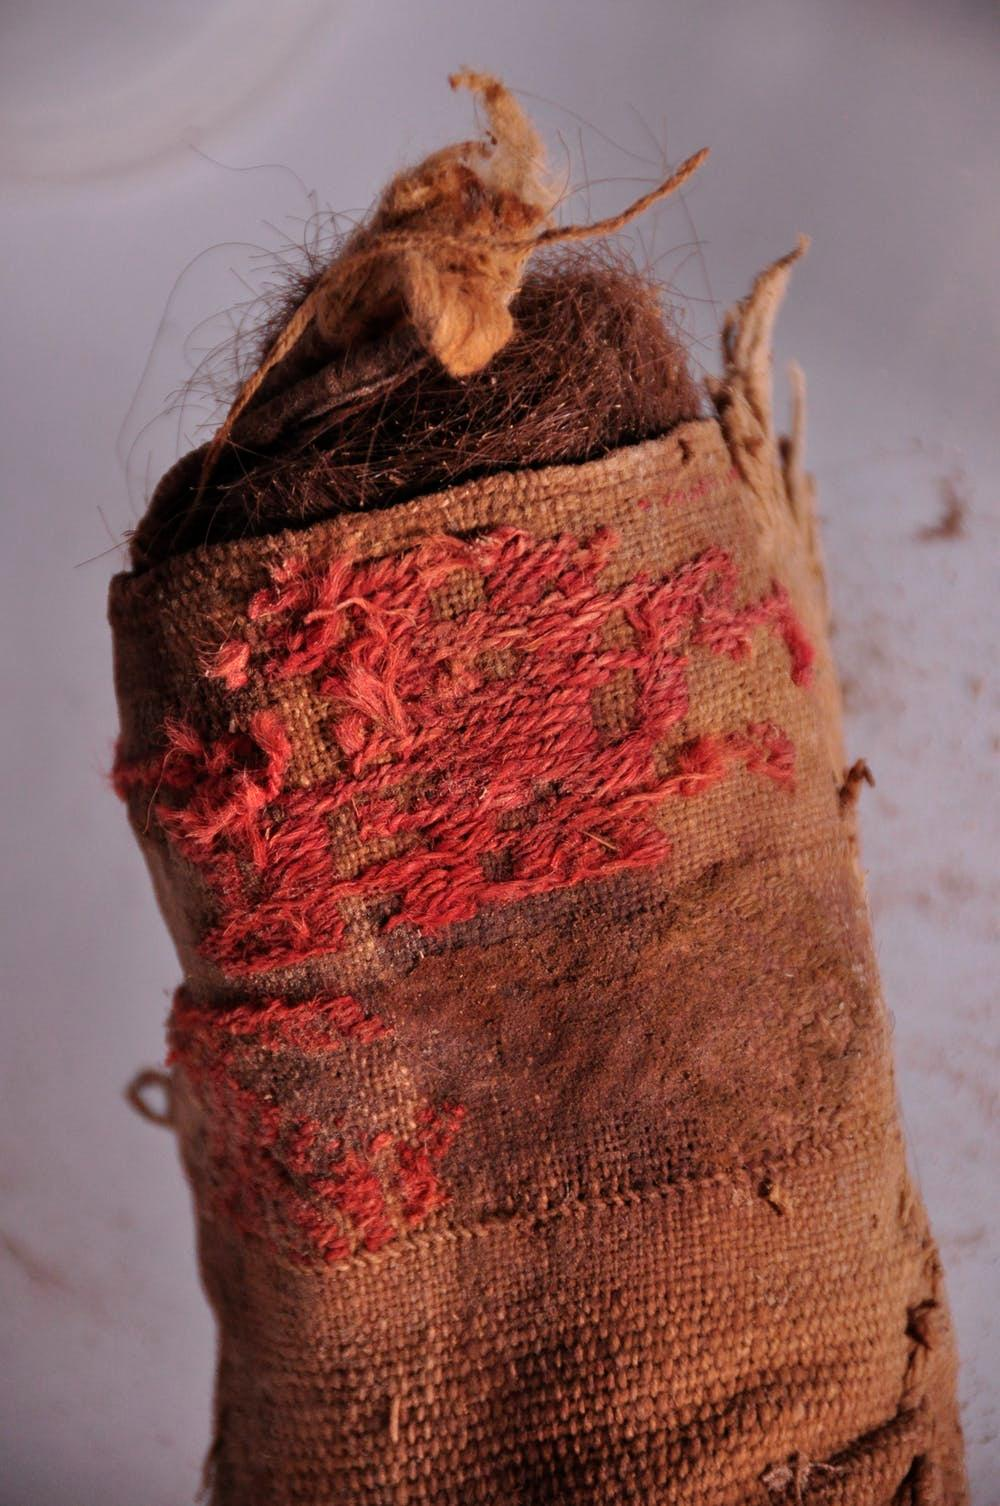 A woven cloth bag stuffed with human hair.